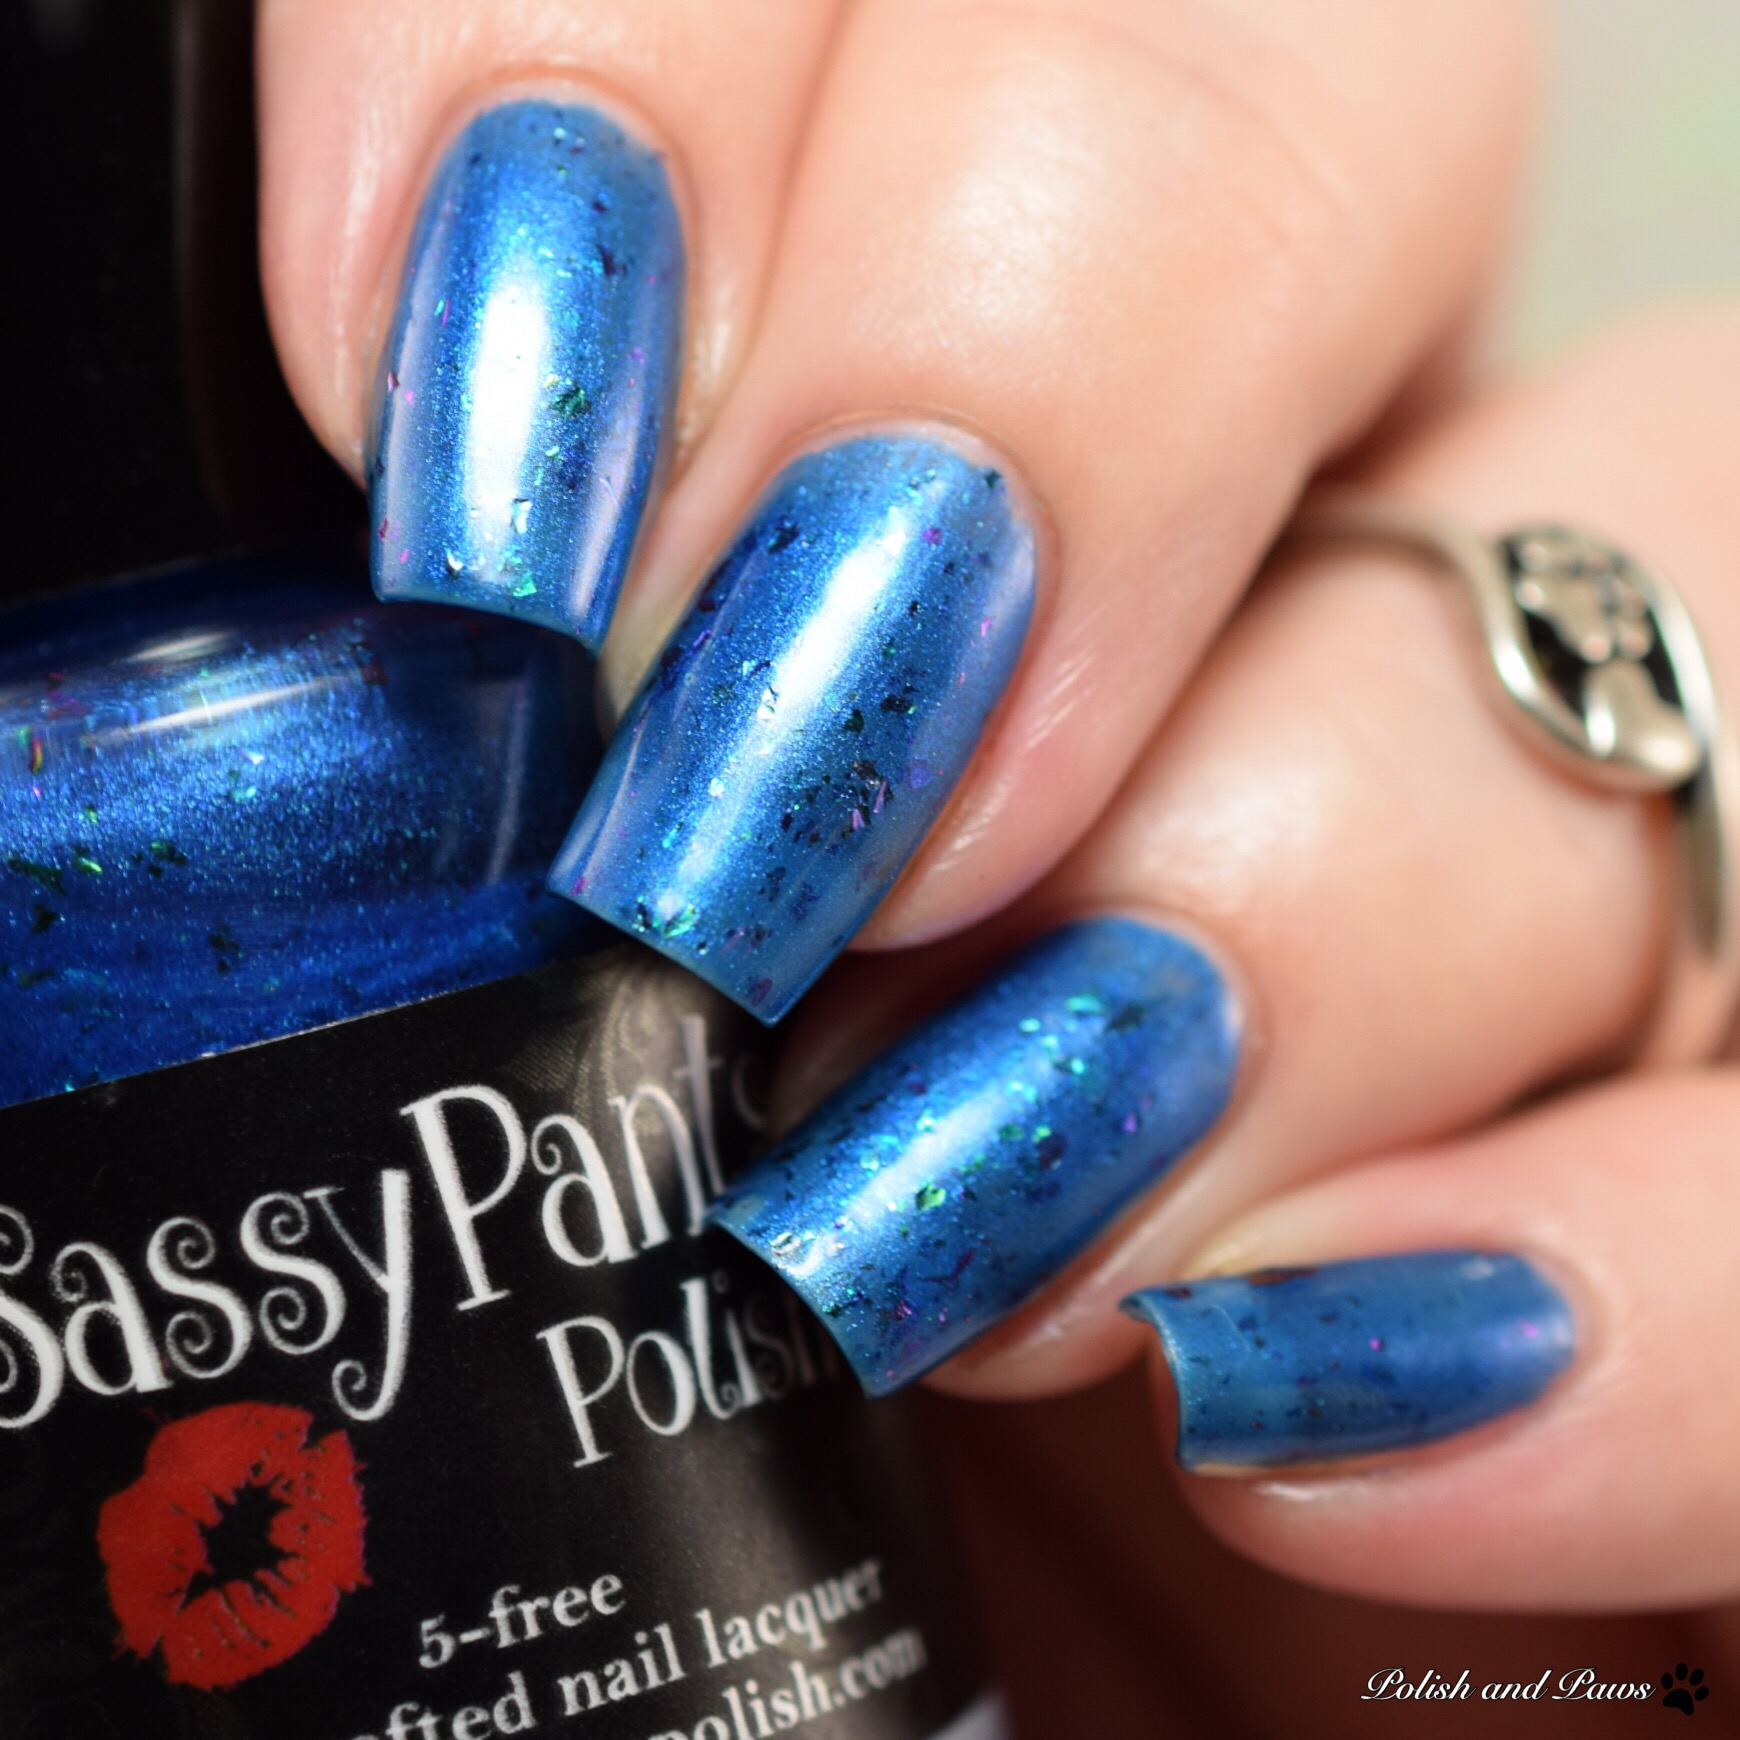 Sassy Pants Polish Where Faeries Dance